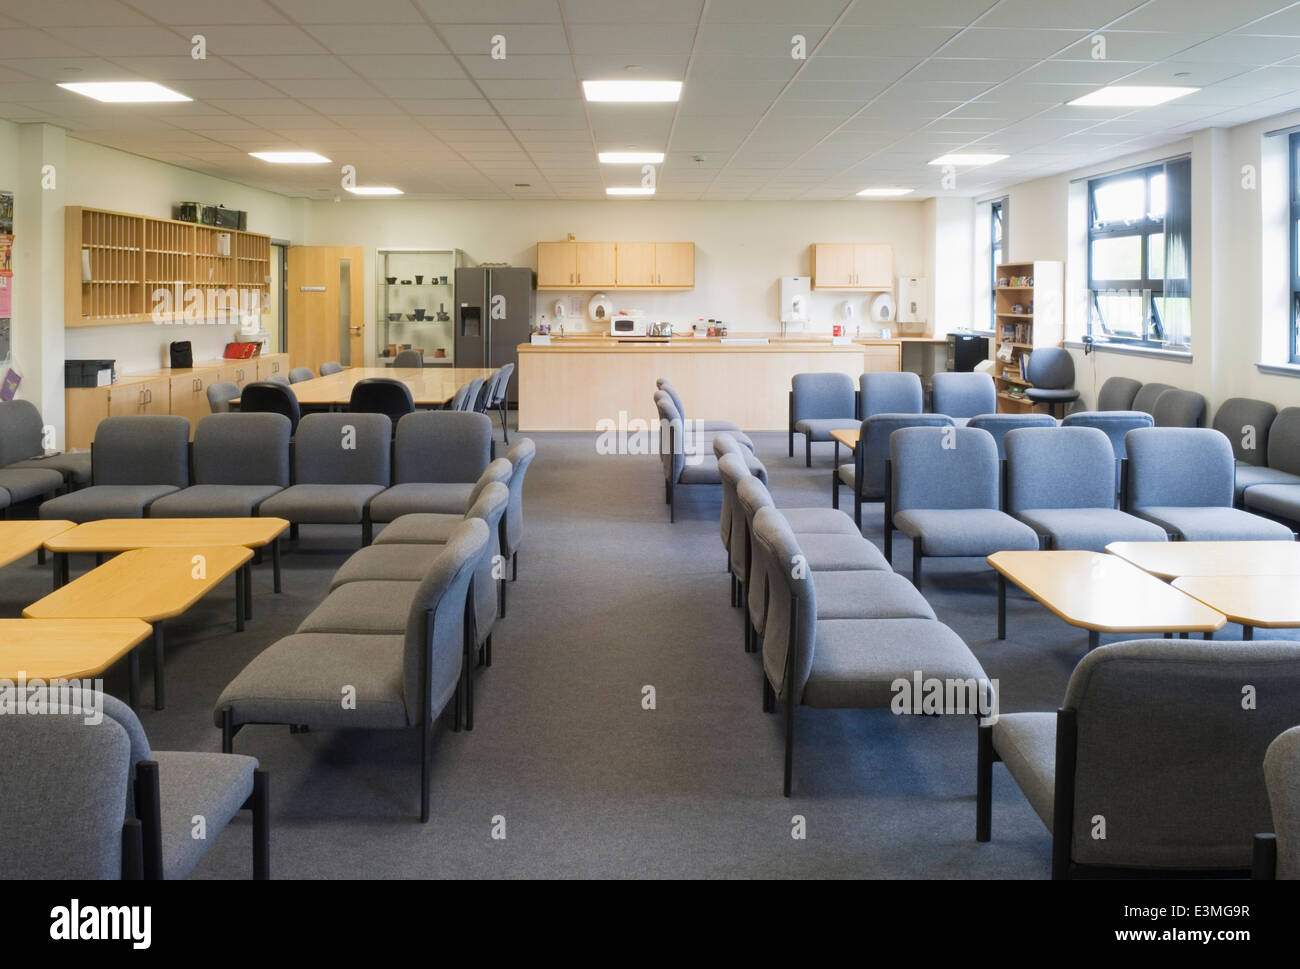 Staff room or teacher 39 s lounge in a modern secondary school stock photo 71137299 alamy for Interior design schools in oklahoma